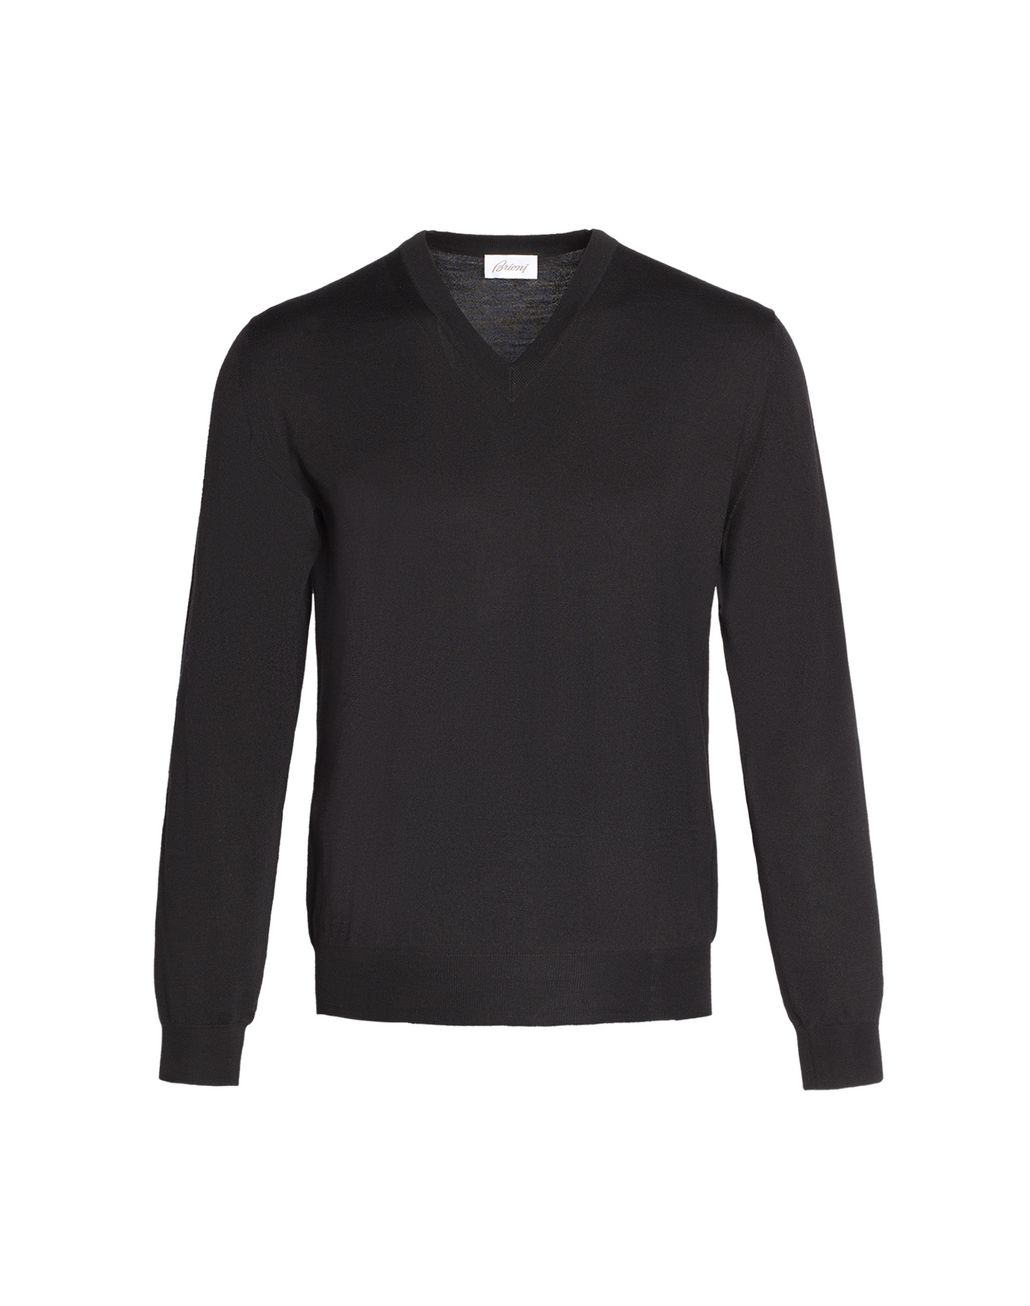 BRIONI Black V-Neck Sweater Knitwear Man f